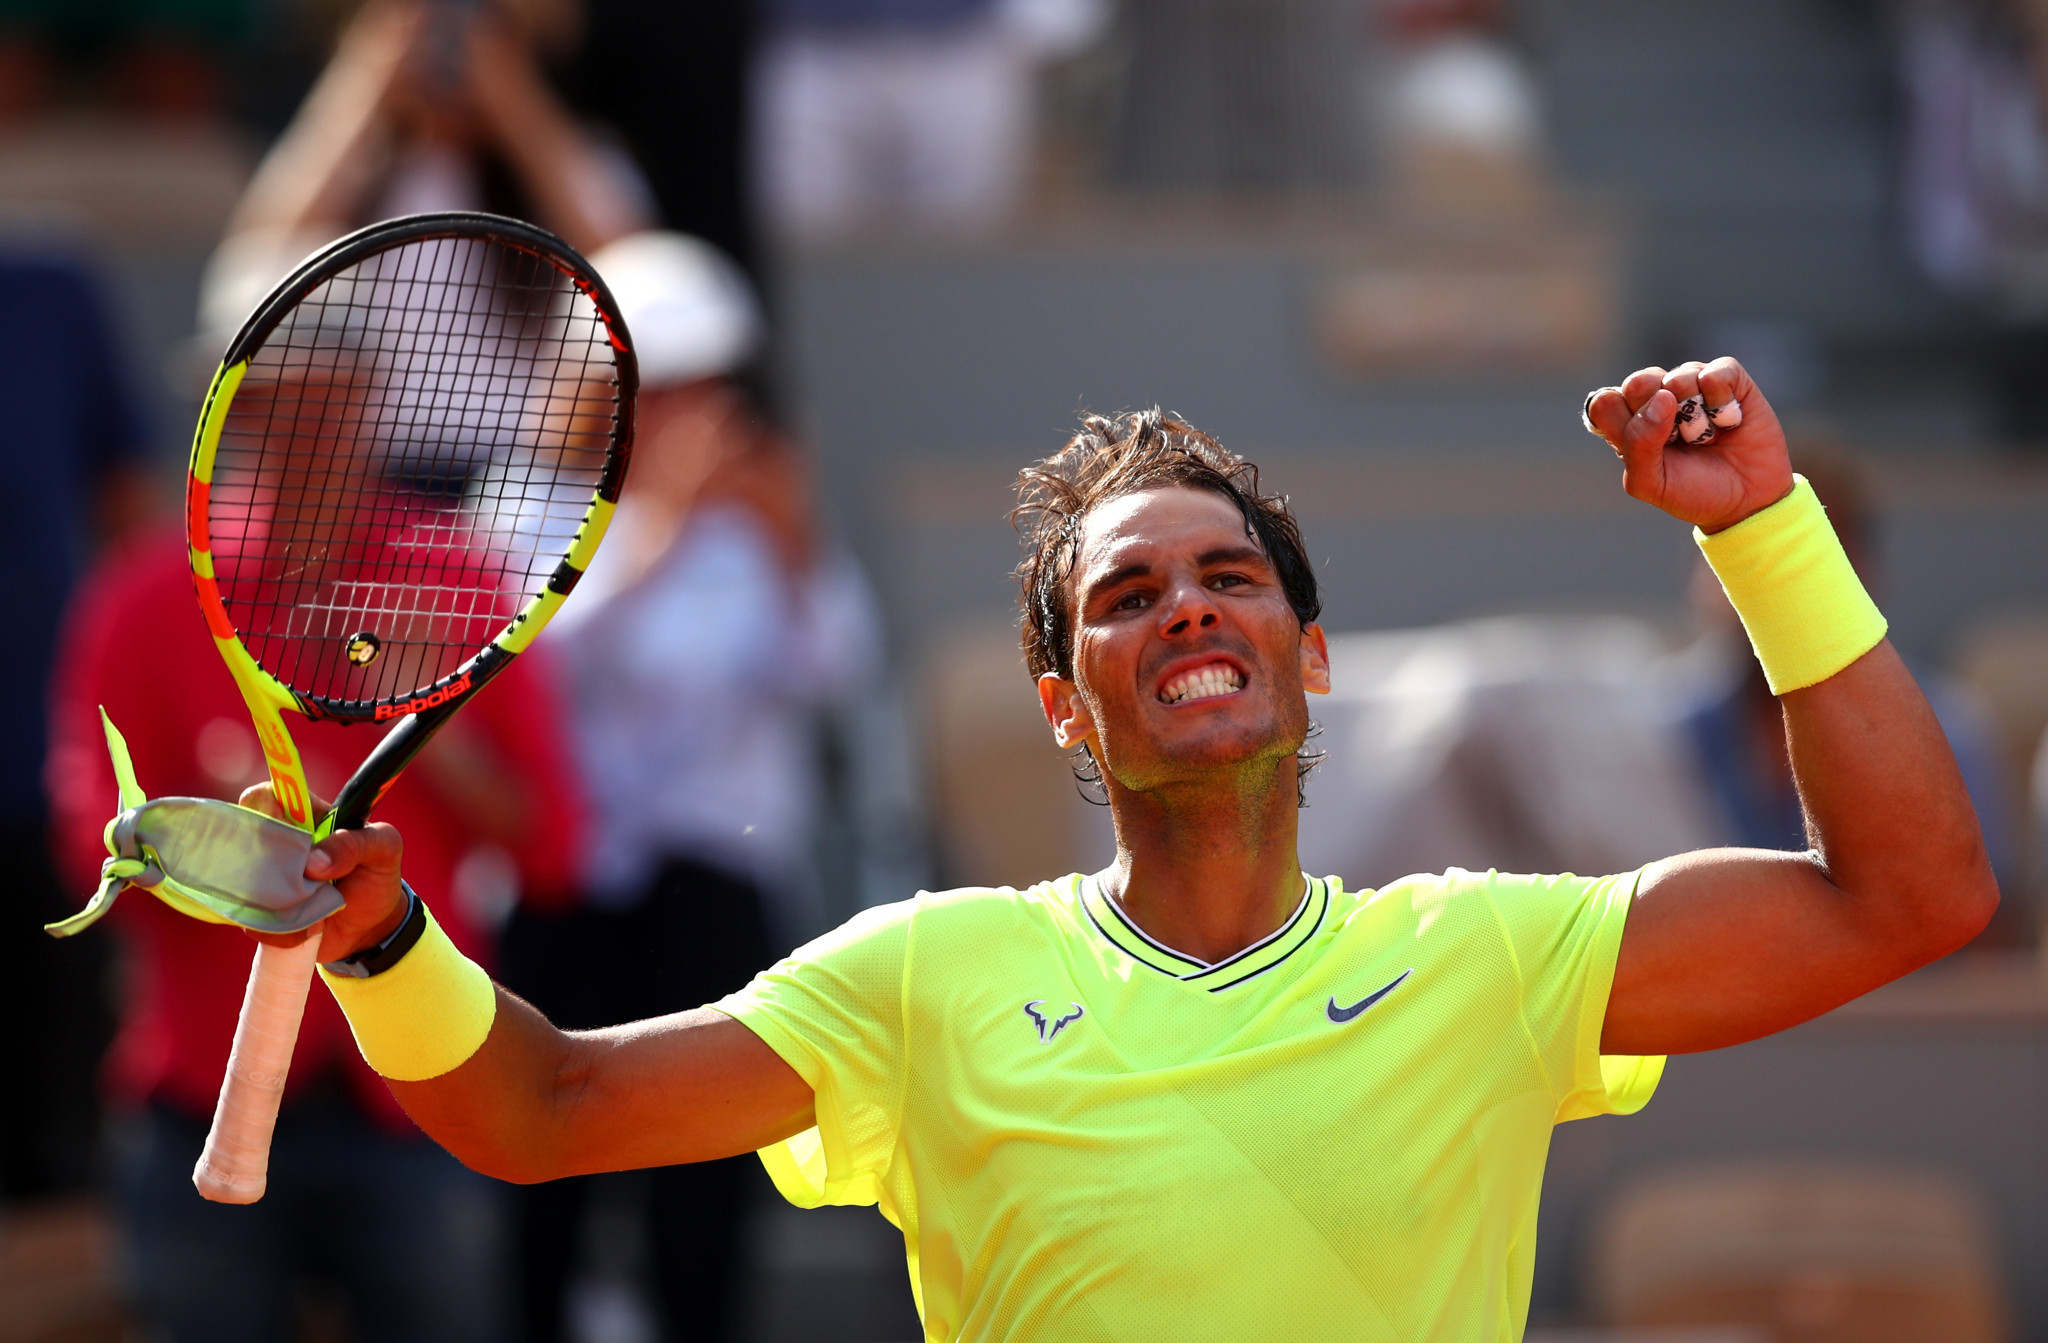 Smiles all round for Spaniard Nadal as he cruises into French Open last eight